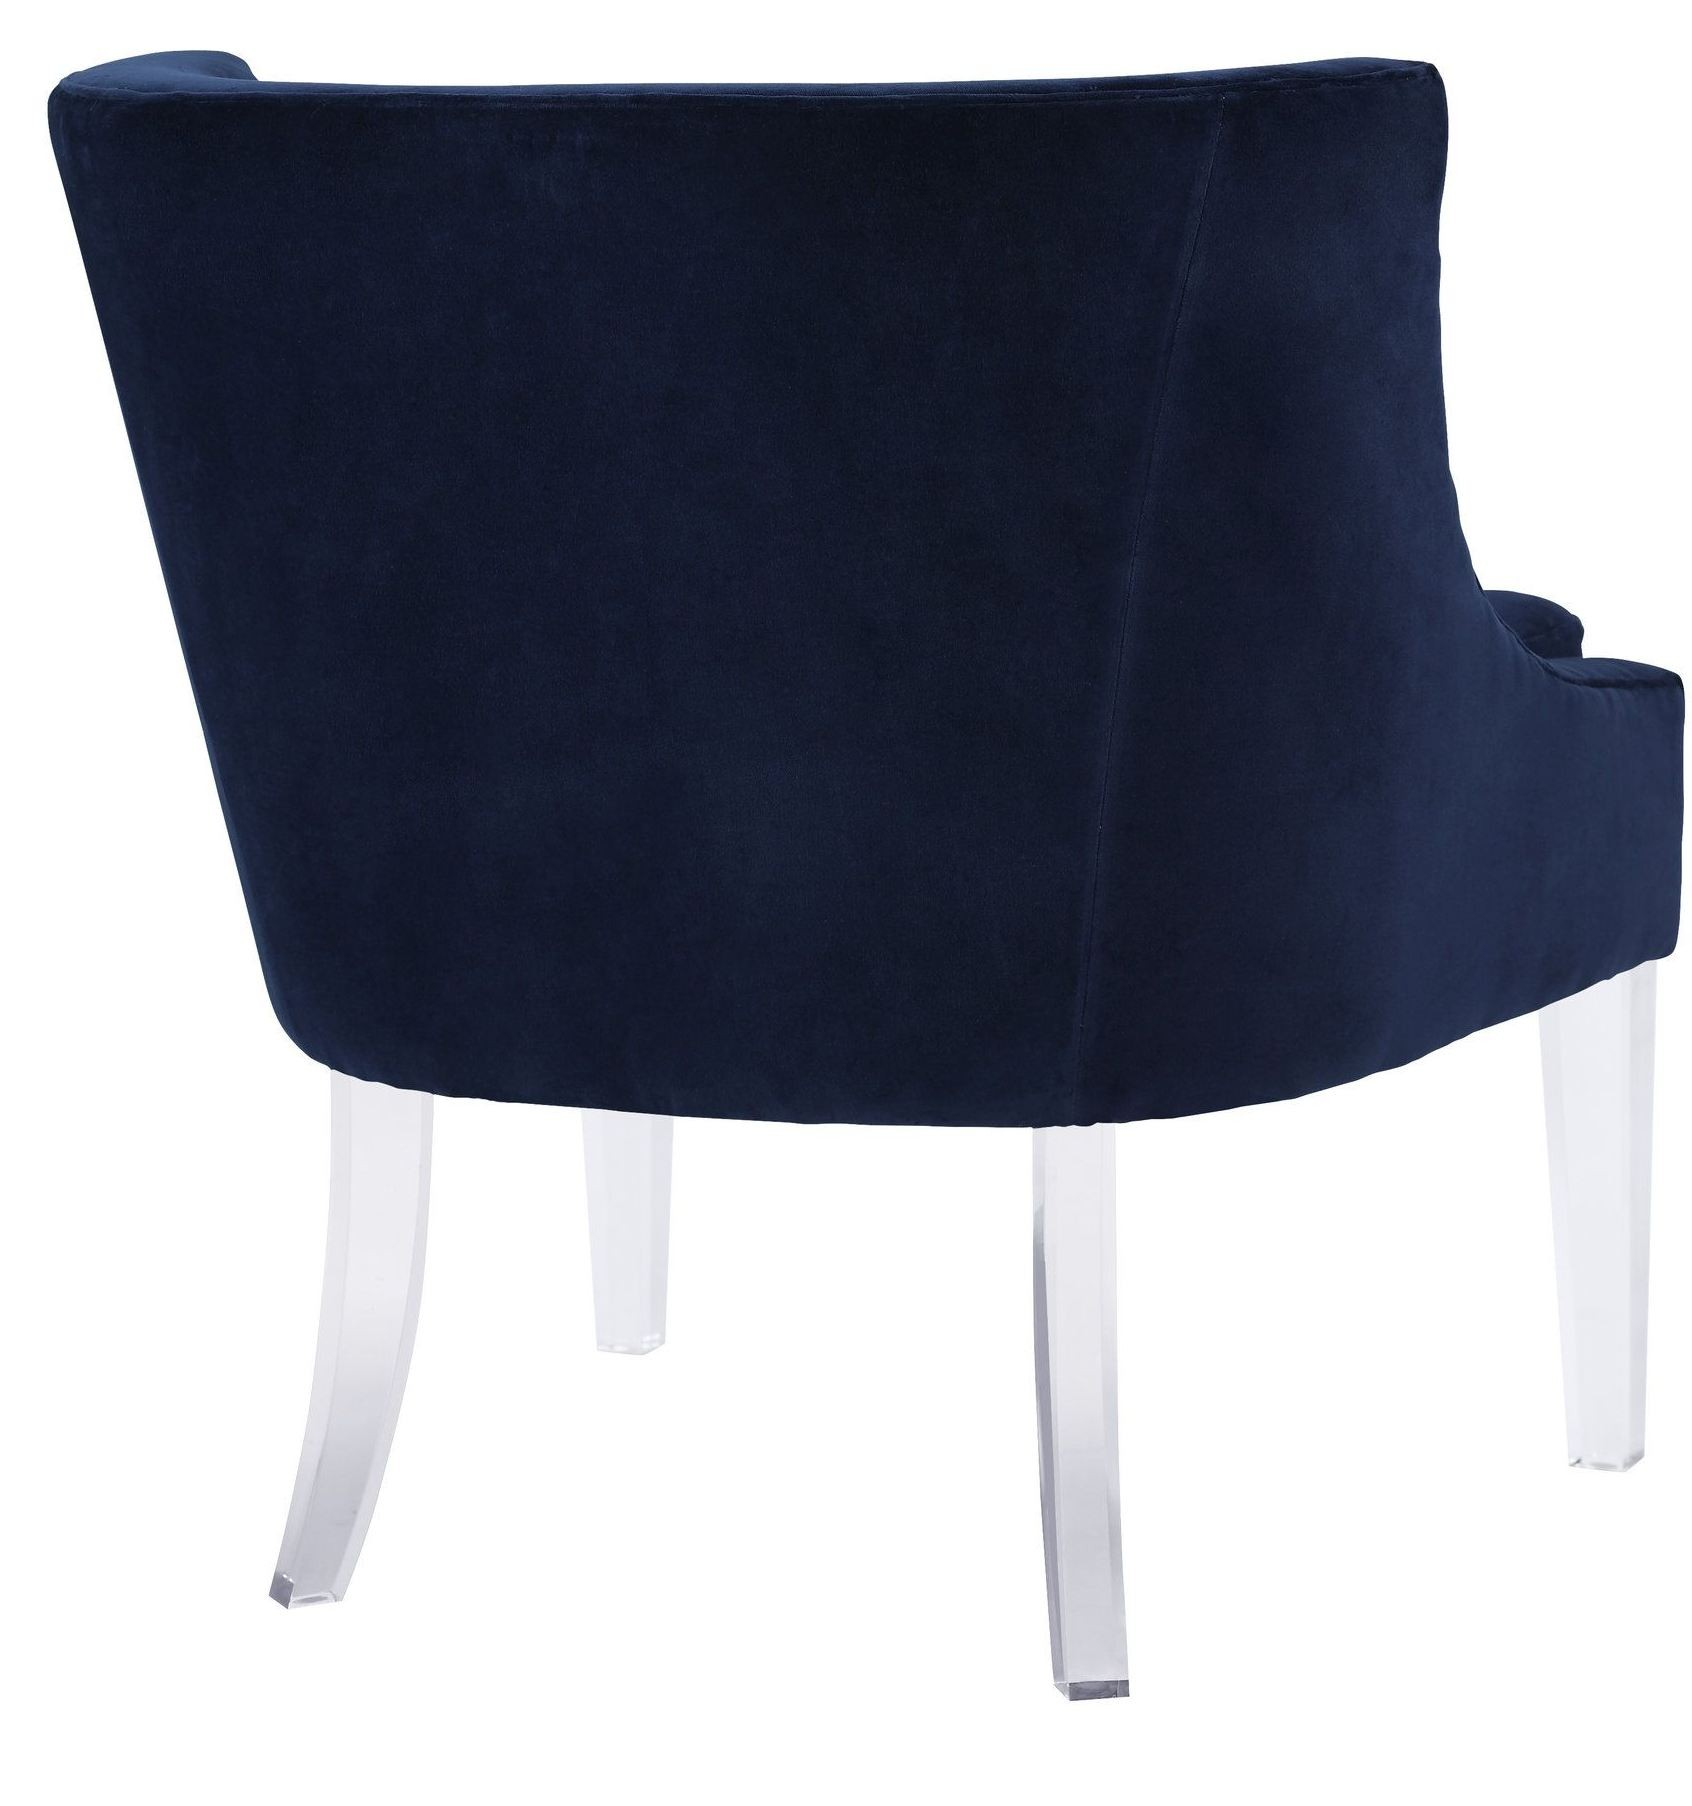 Blue Velvet Chair Myra Blue Velvet Chair A105 Tov Furniture